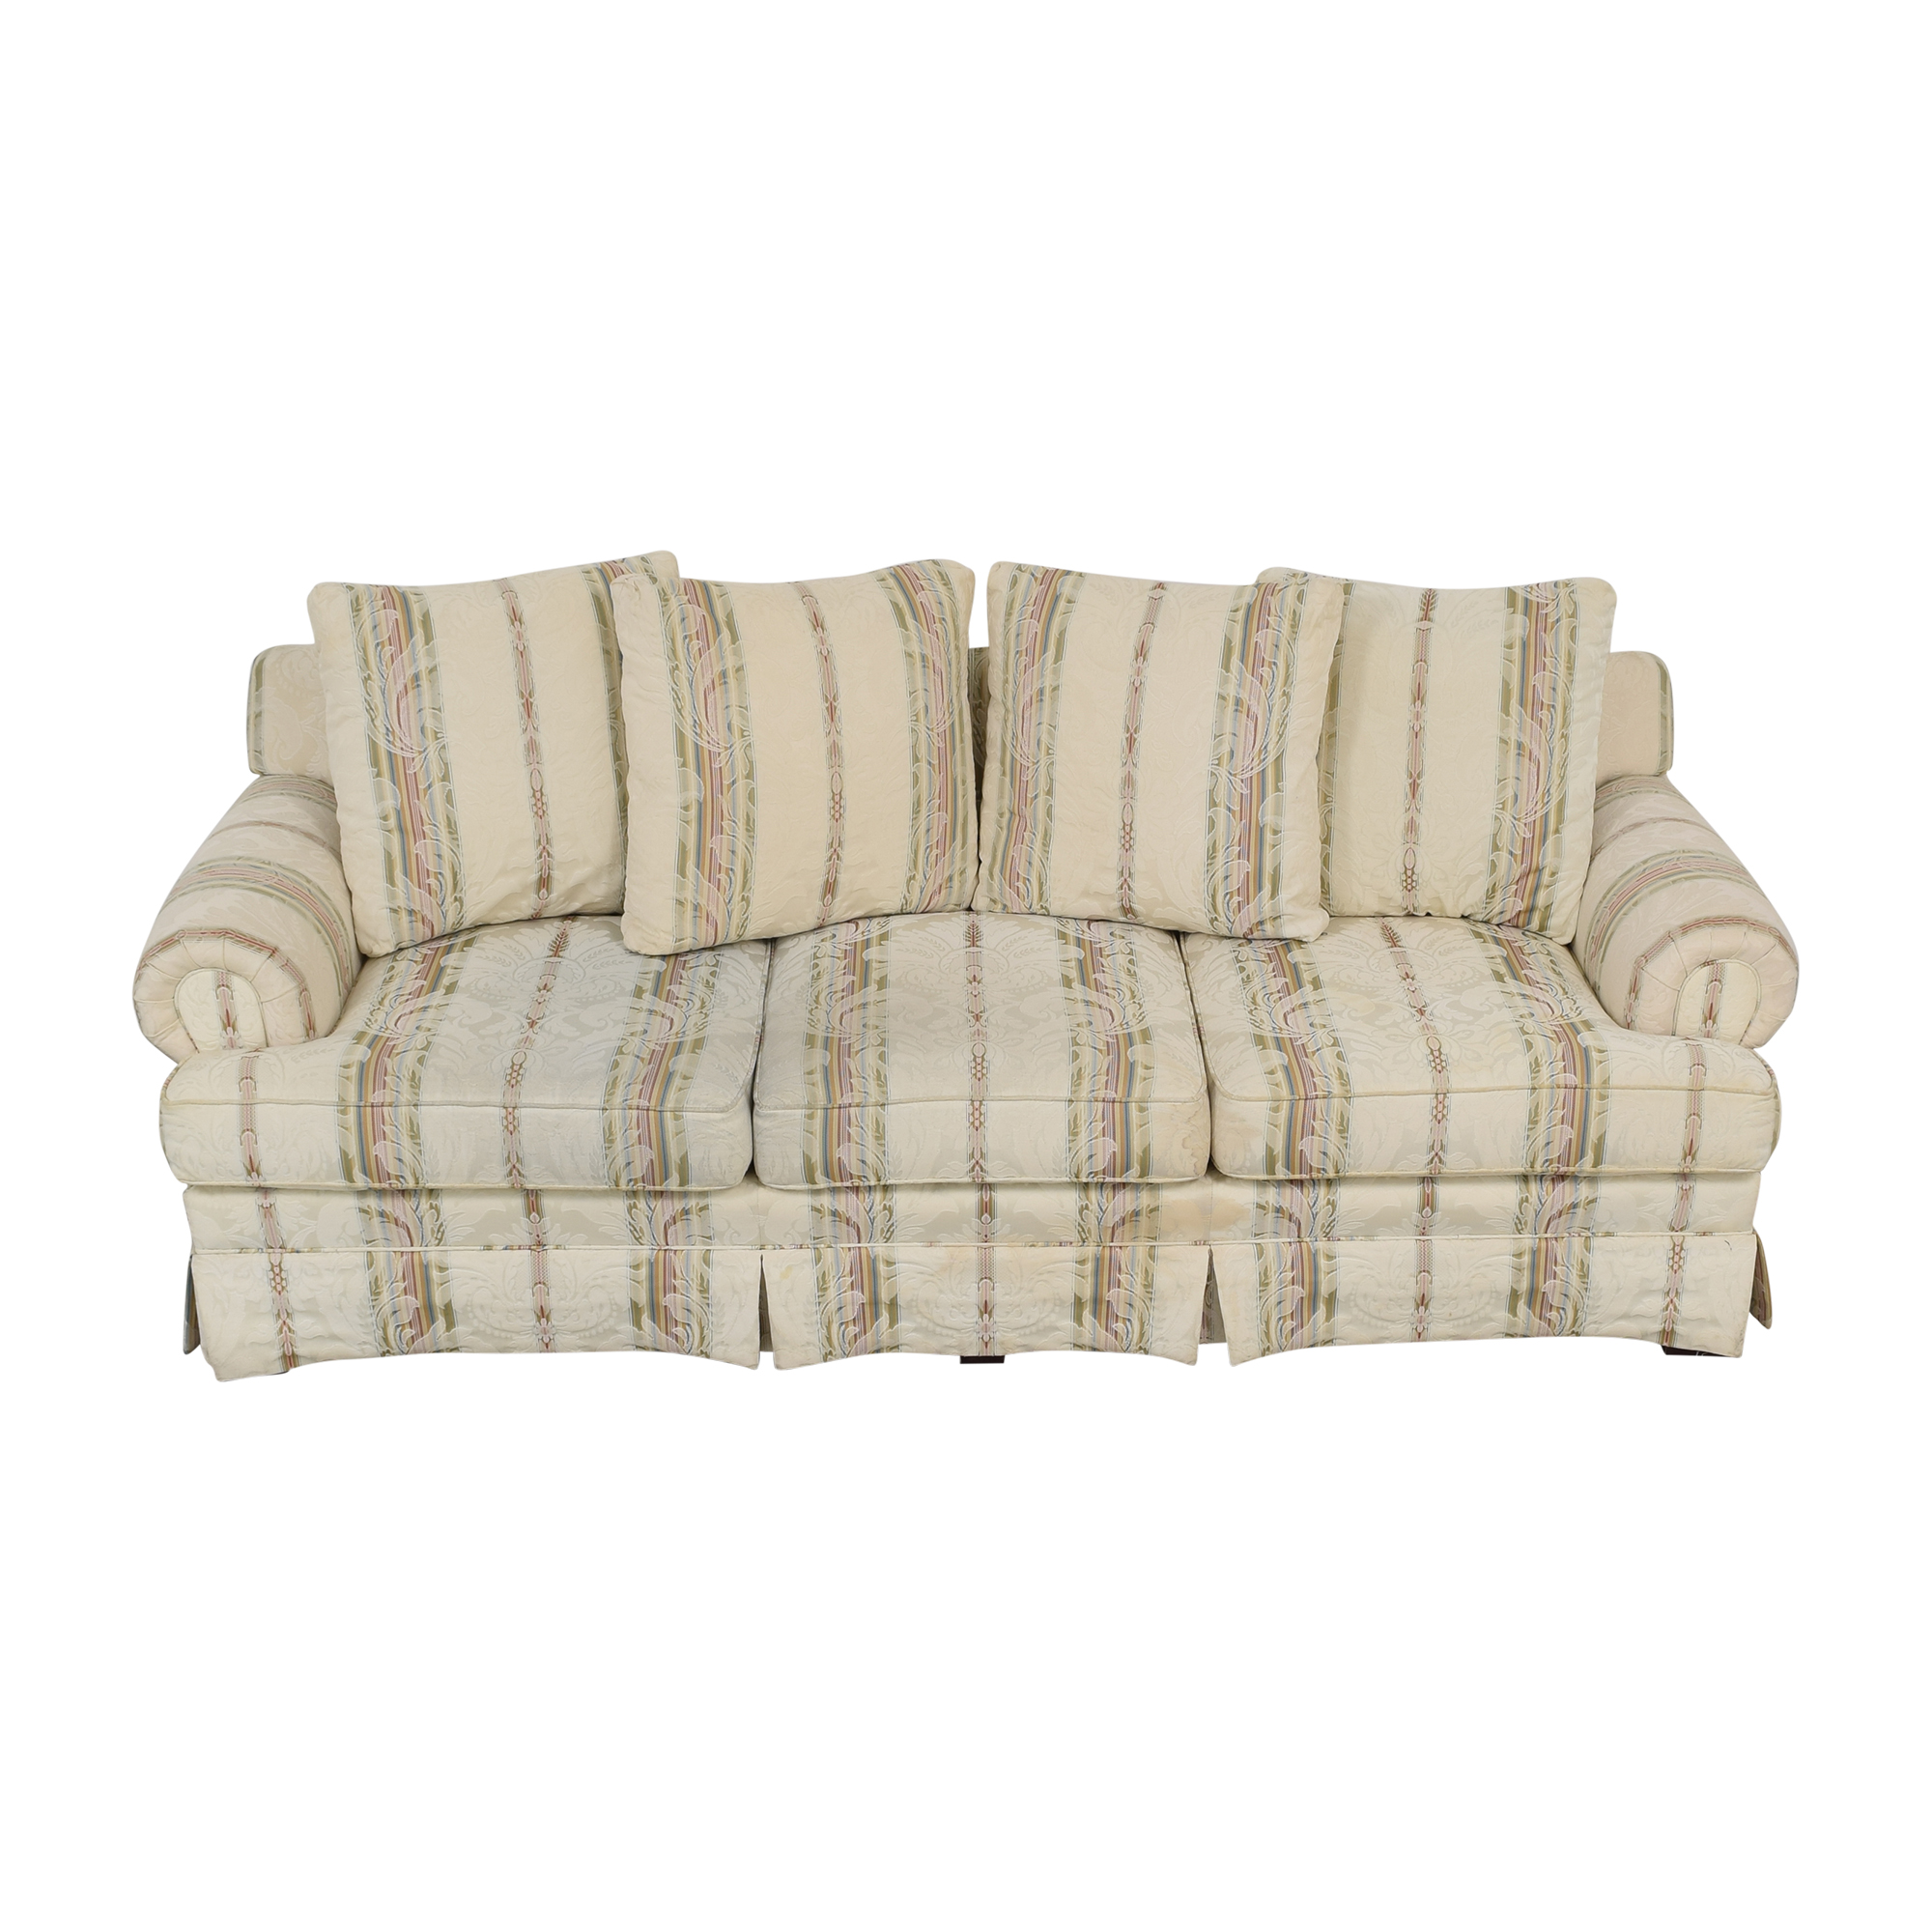 Broyhill Furniture Broyhill Furniture Layered Pillow Sofa on sale